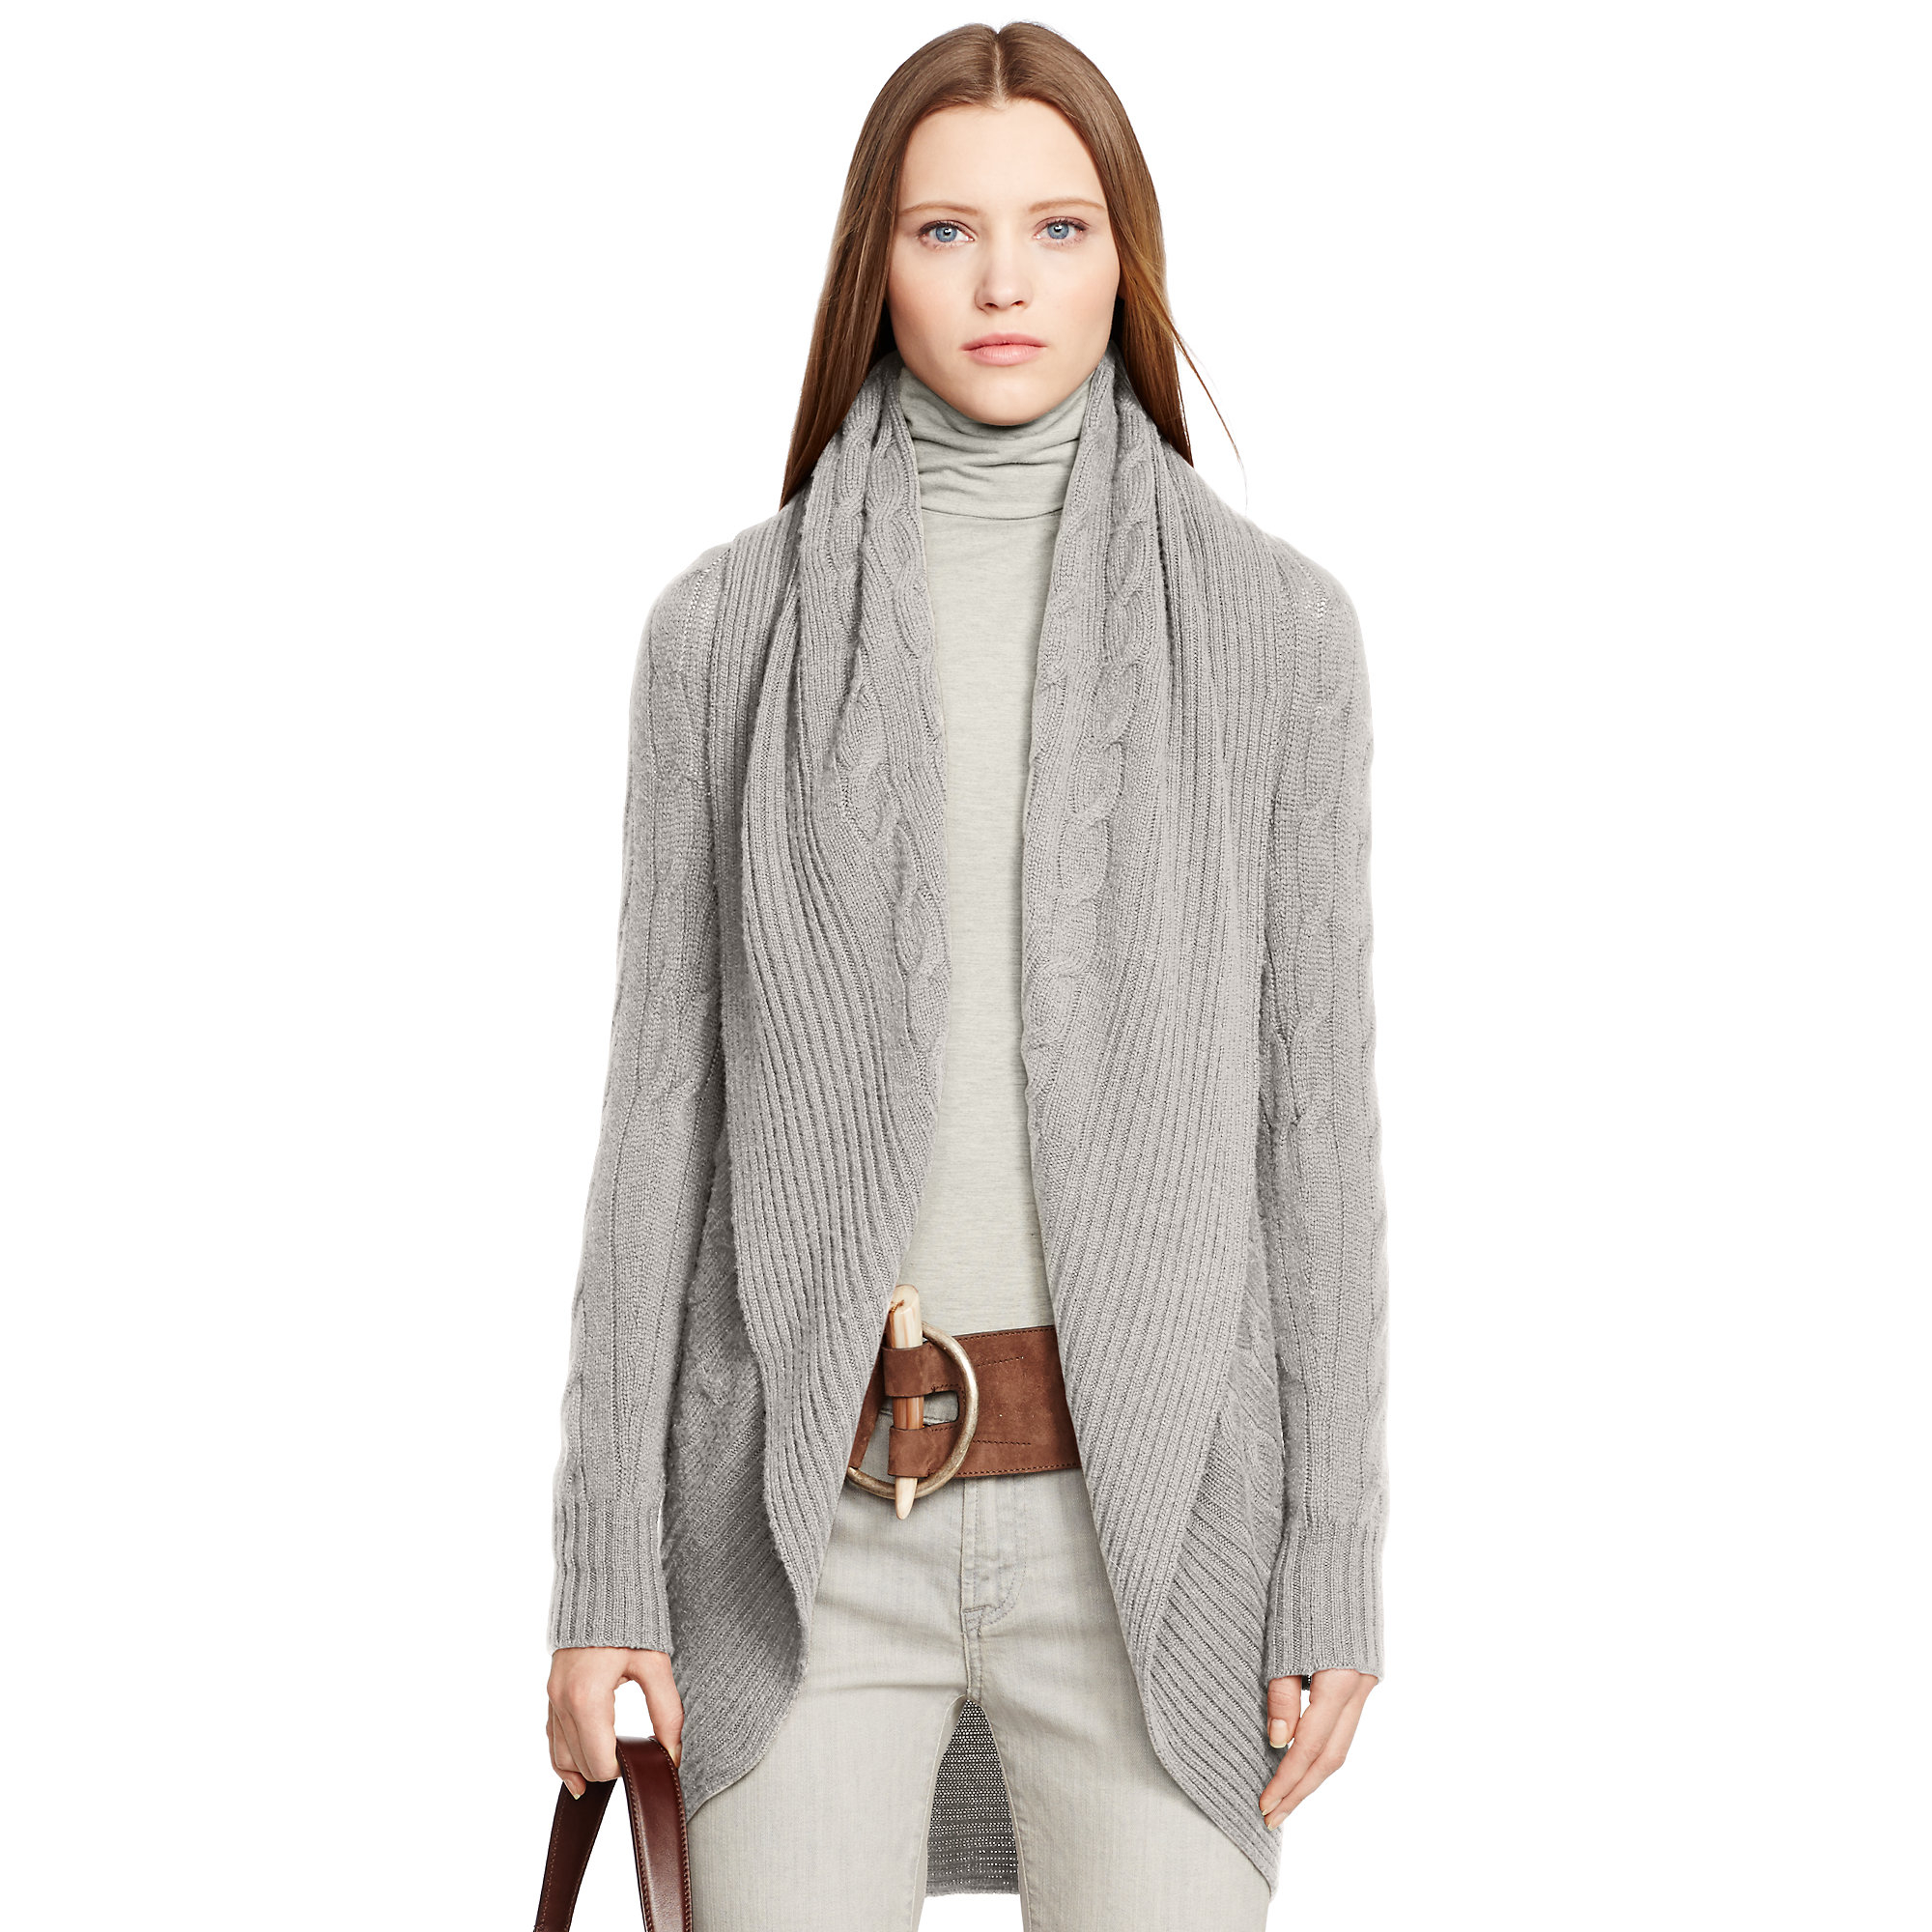 Ralph lauren black label Cabled Cashmere Open Cardigan in Gray | Lyst